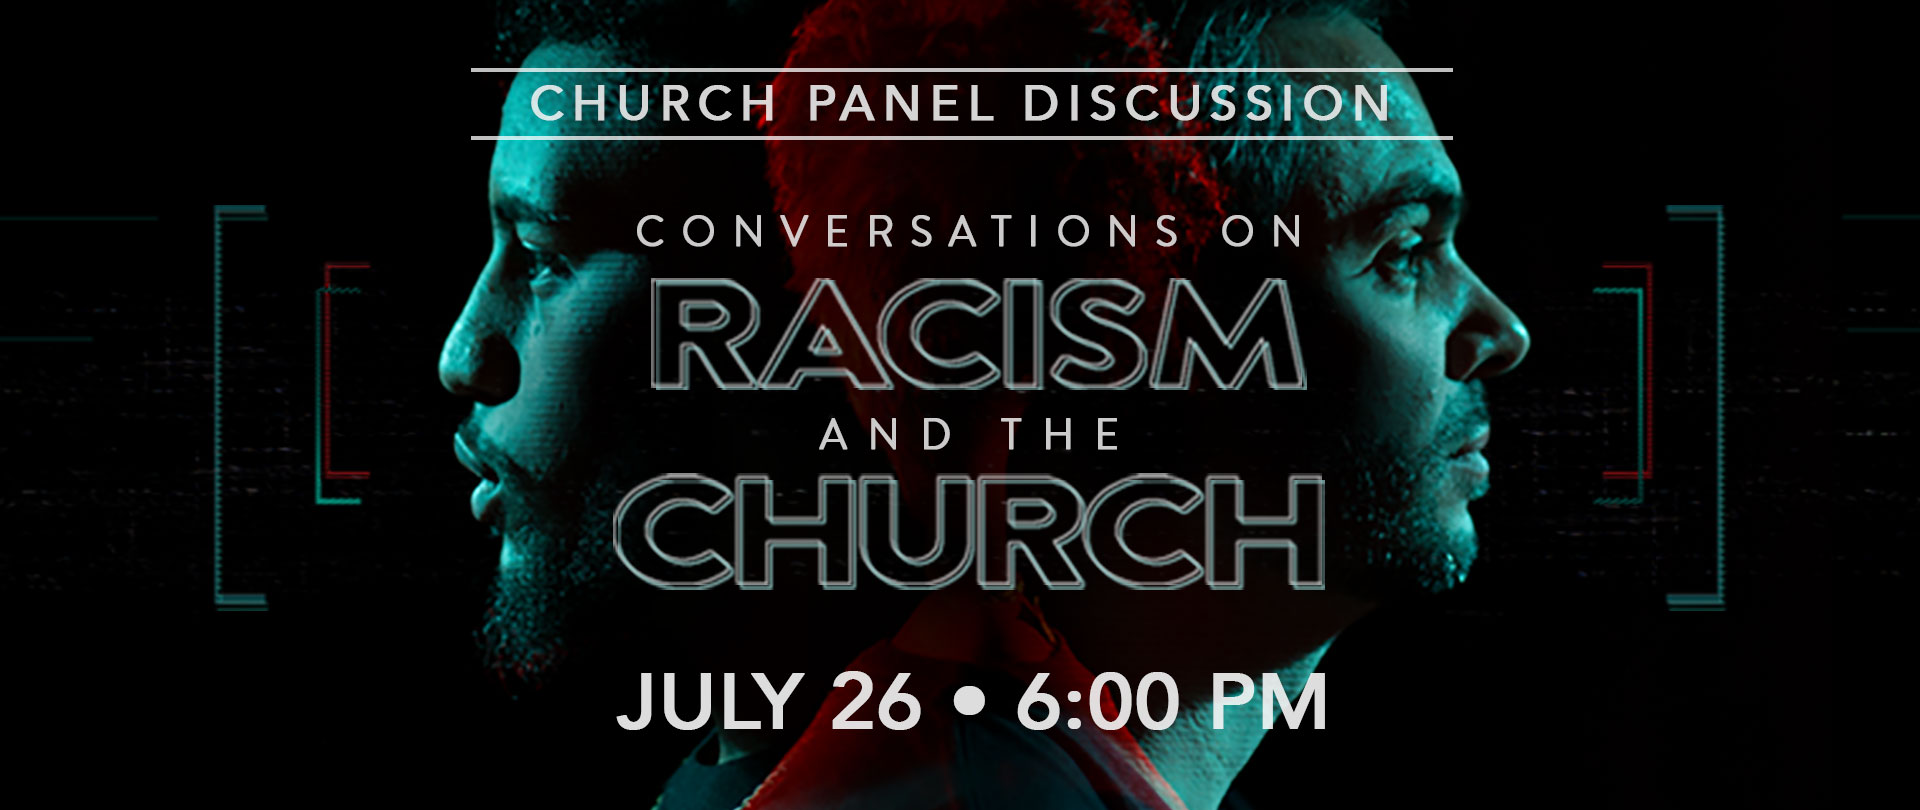 Sunday, July 26